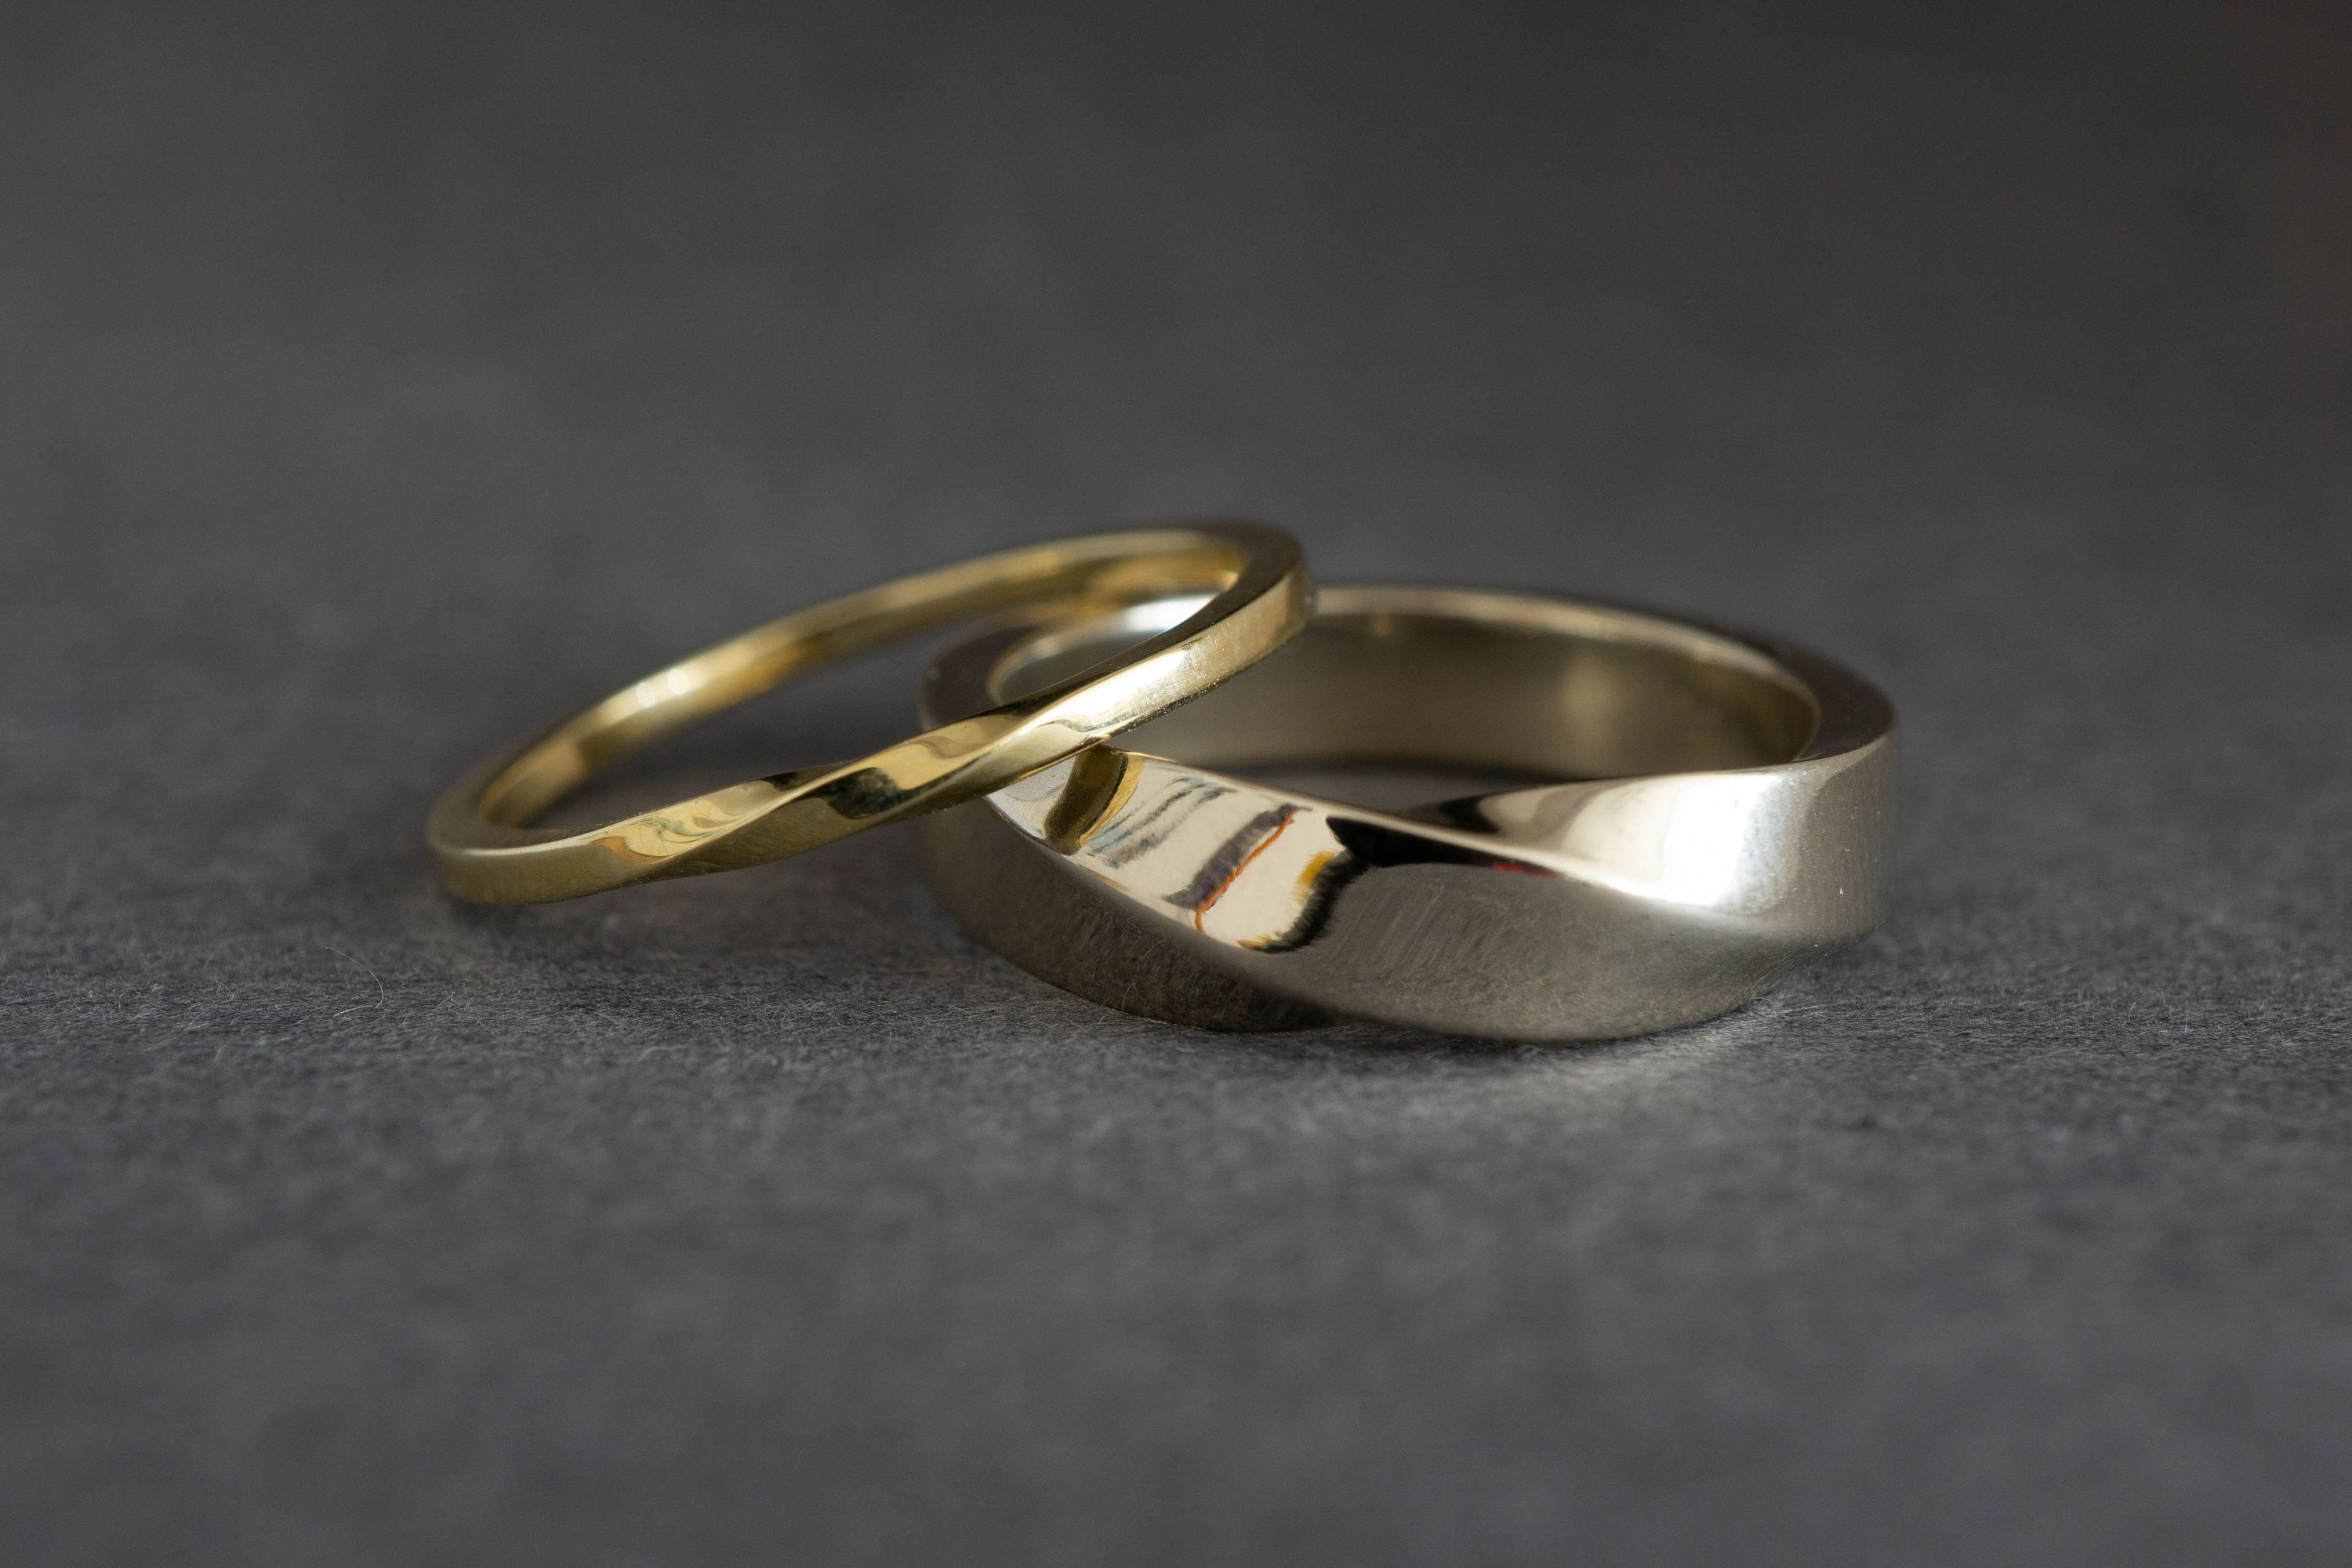 Twist Shout Matching Wedding Bands His And Hers 14k Gold Etsy Wedding Rings Sets His And Hers Gold Wedding Band Sets Couples Ring Set